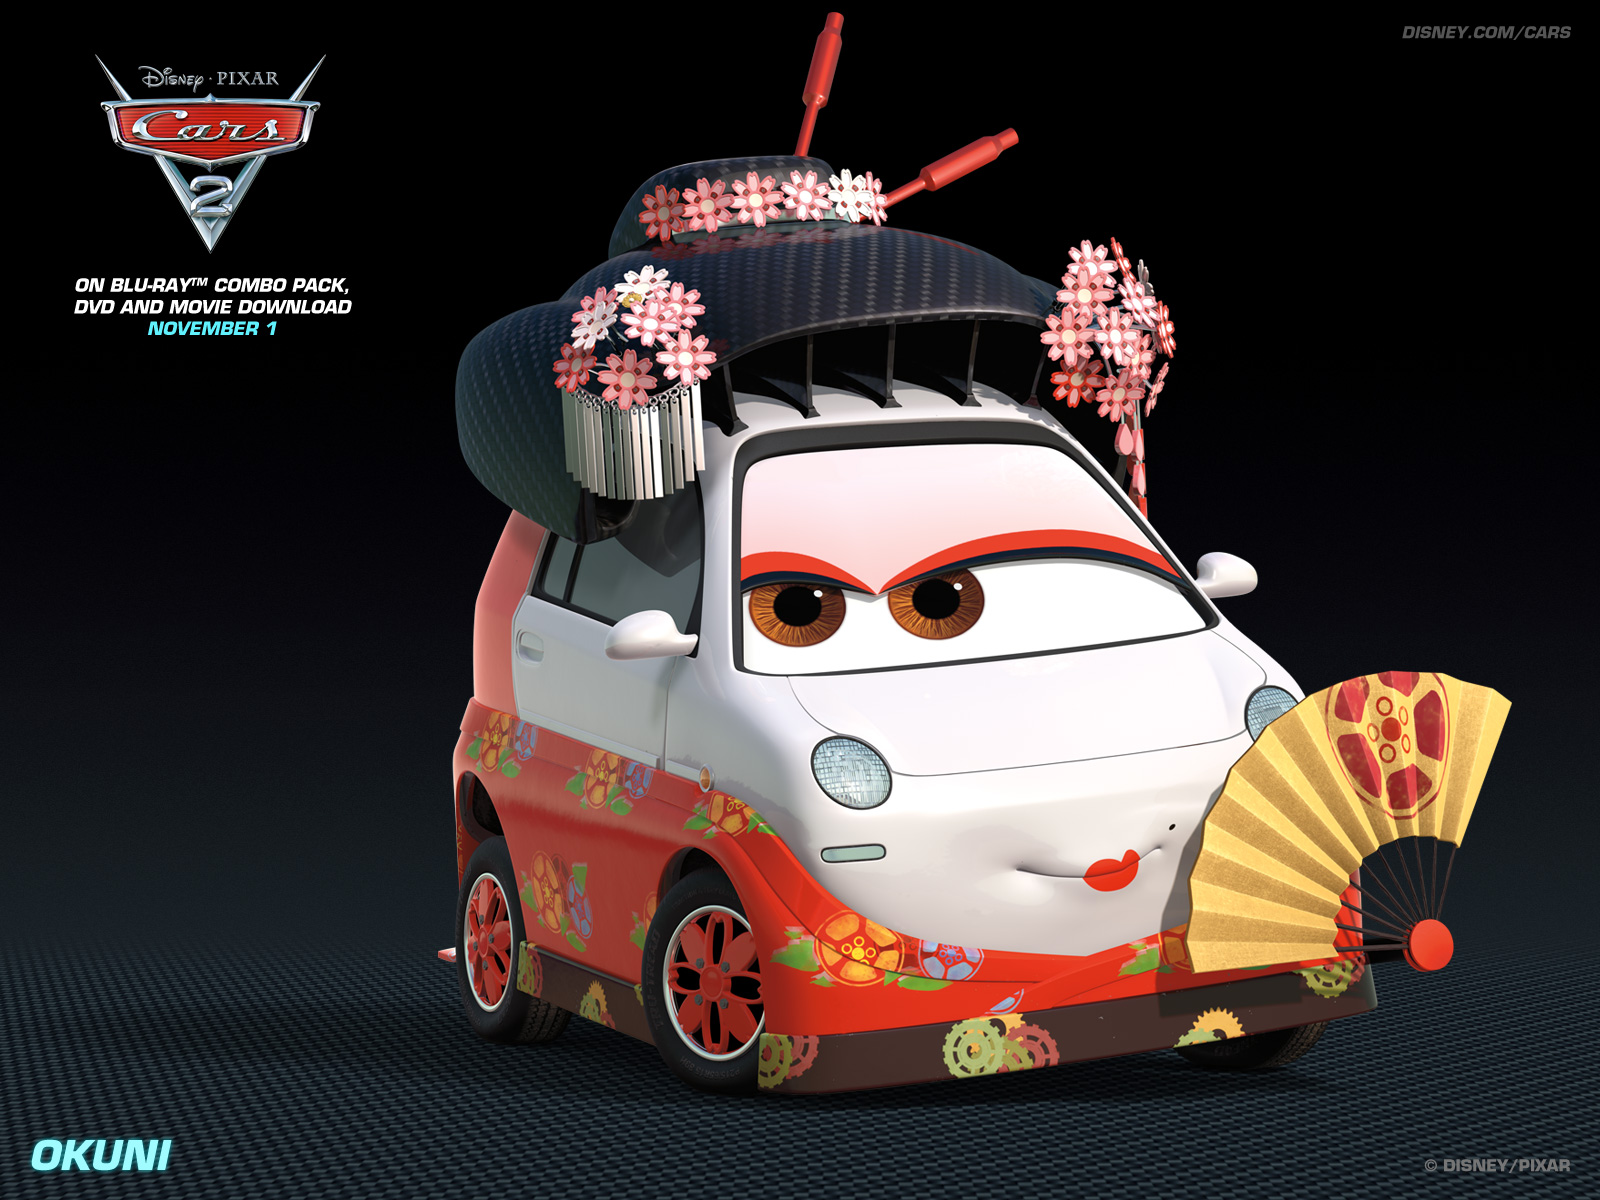 Okuni   Disney Pixar Cars 2 Wallpaper 28262173 1600x1200